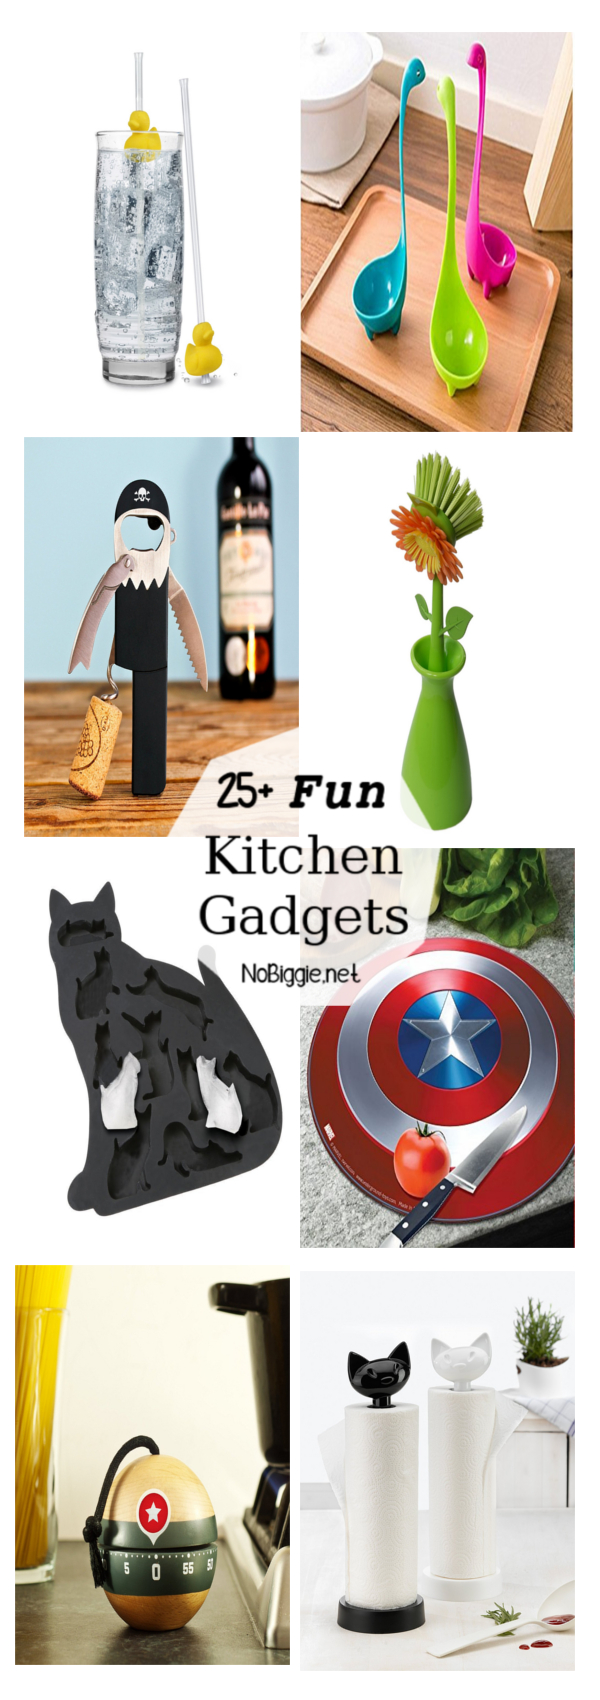 25 fun kitchen gadgets for those kitchen enthusiasts in your family fungadgets